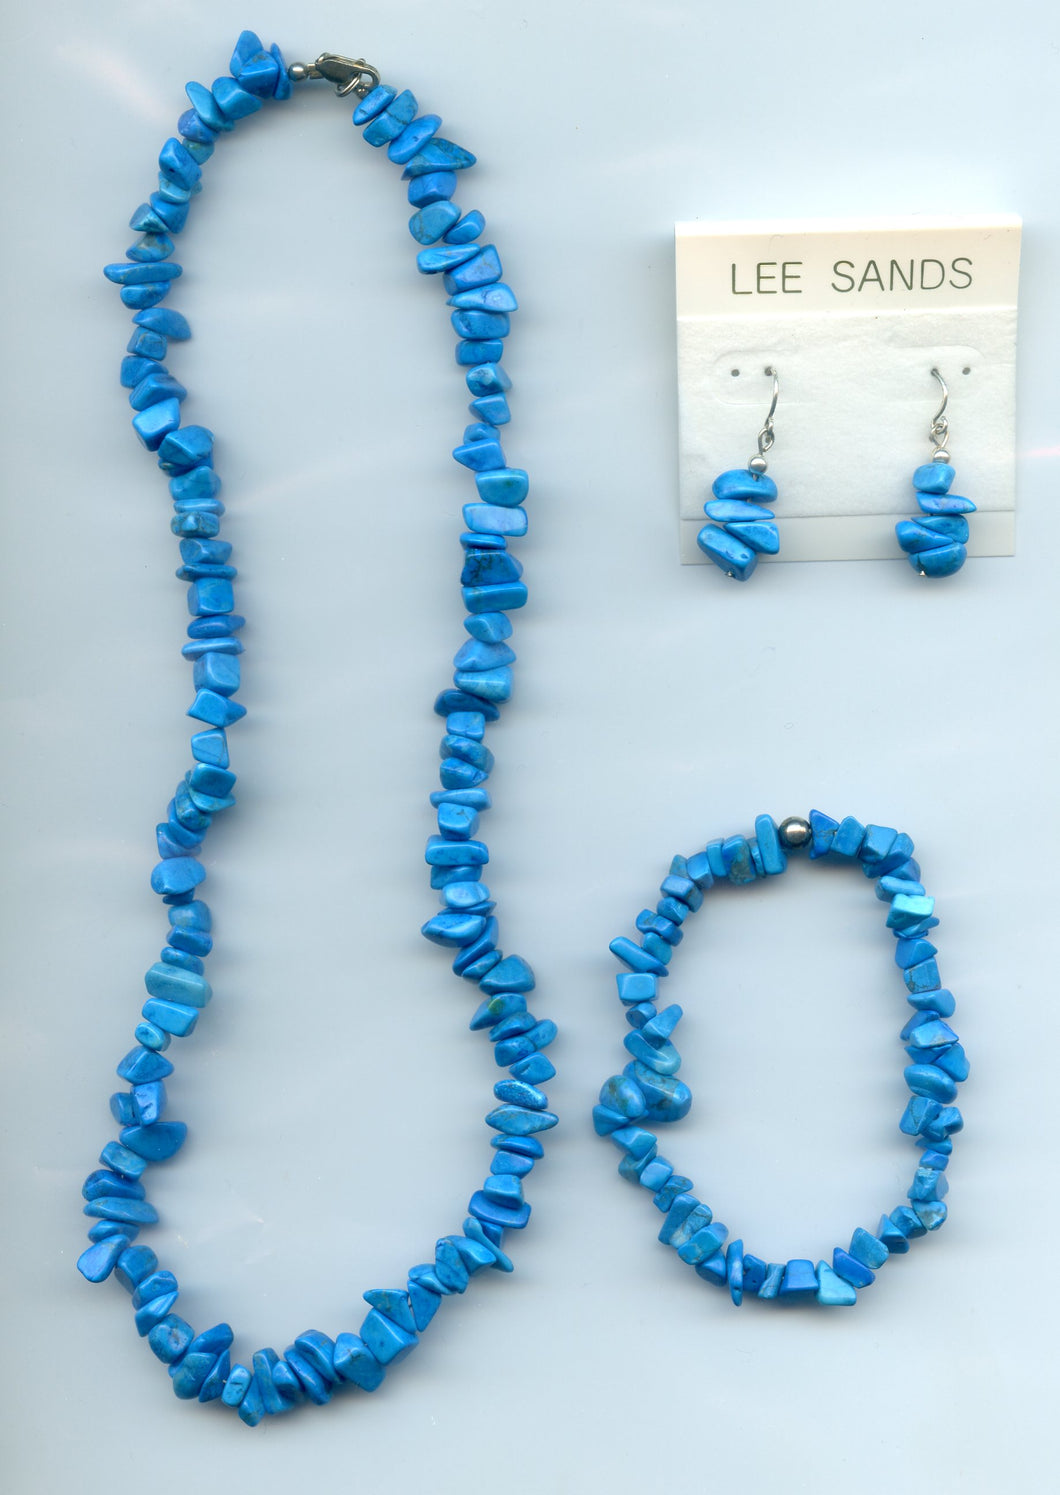 Lee Sands Blue Howlite Chips Wardrobe set s/s